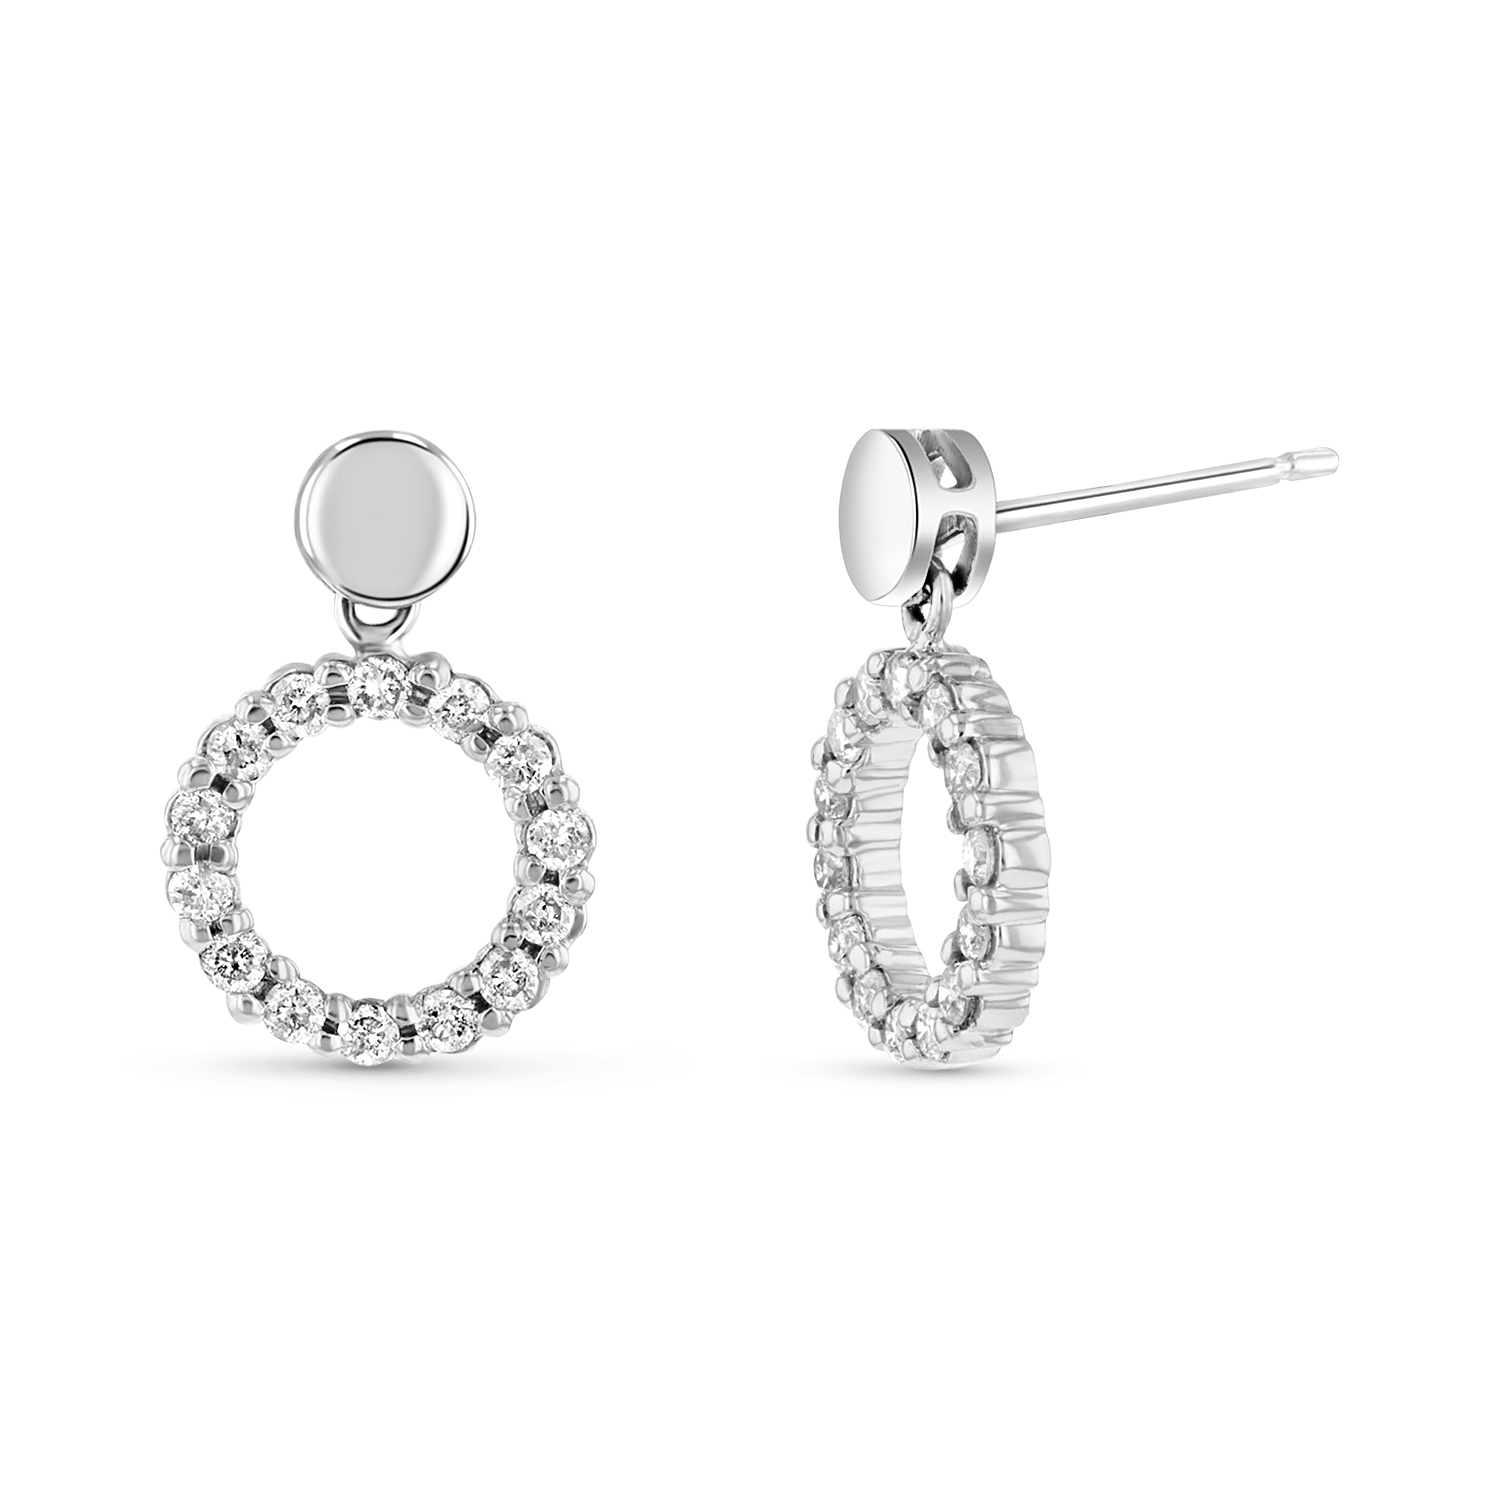 View 14k Gold Earrings with 0.50ct tw of Round Diamond